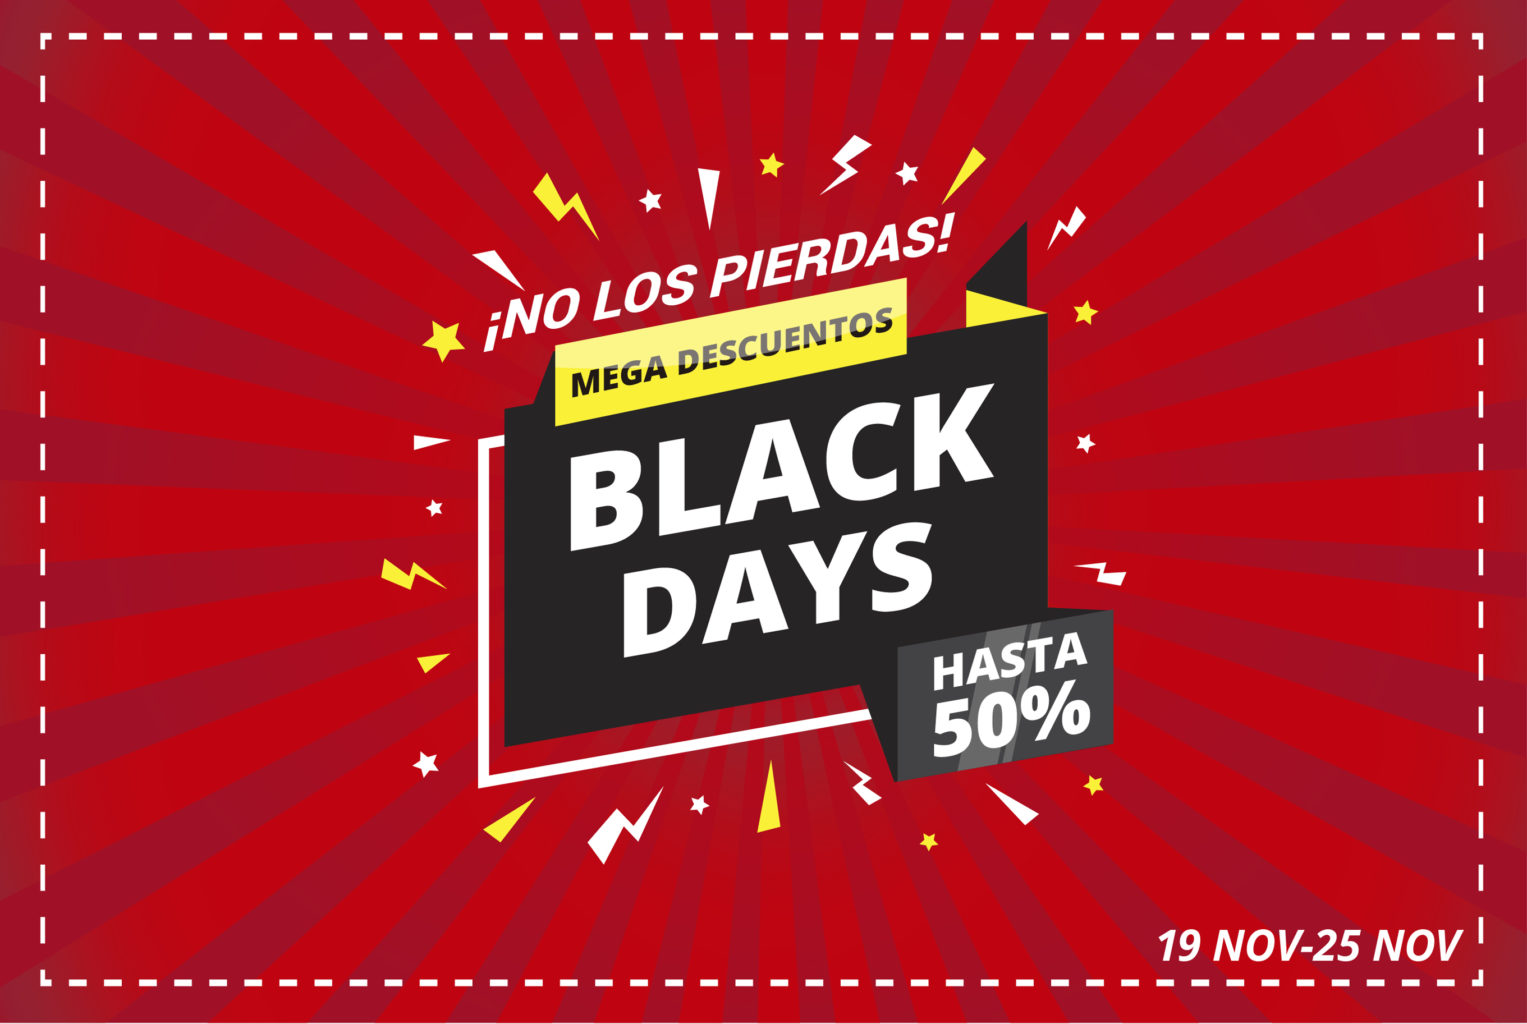 Black days optica herradores